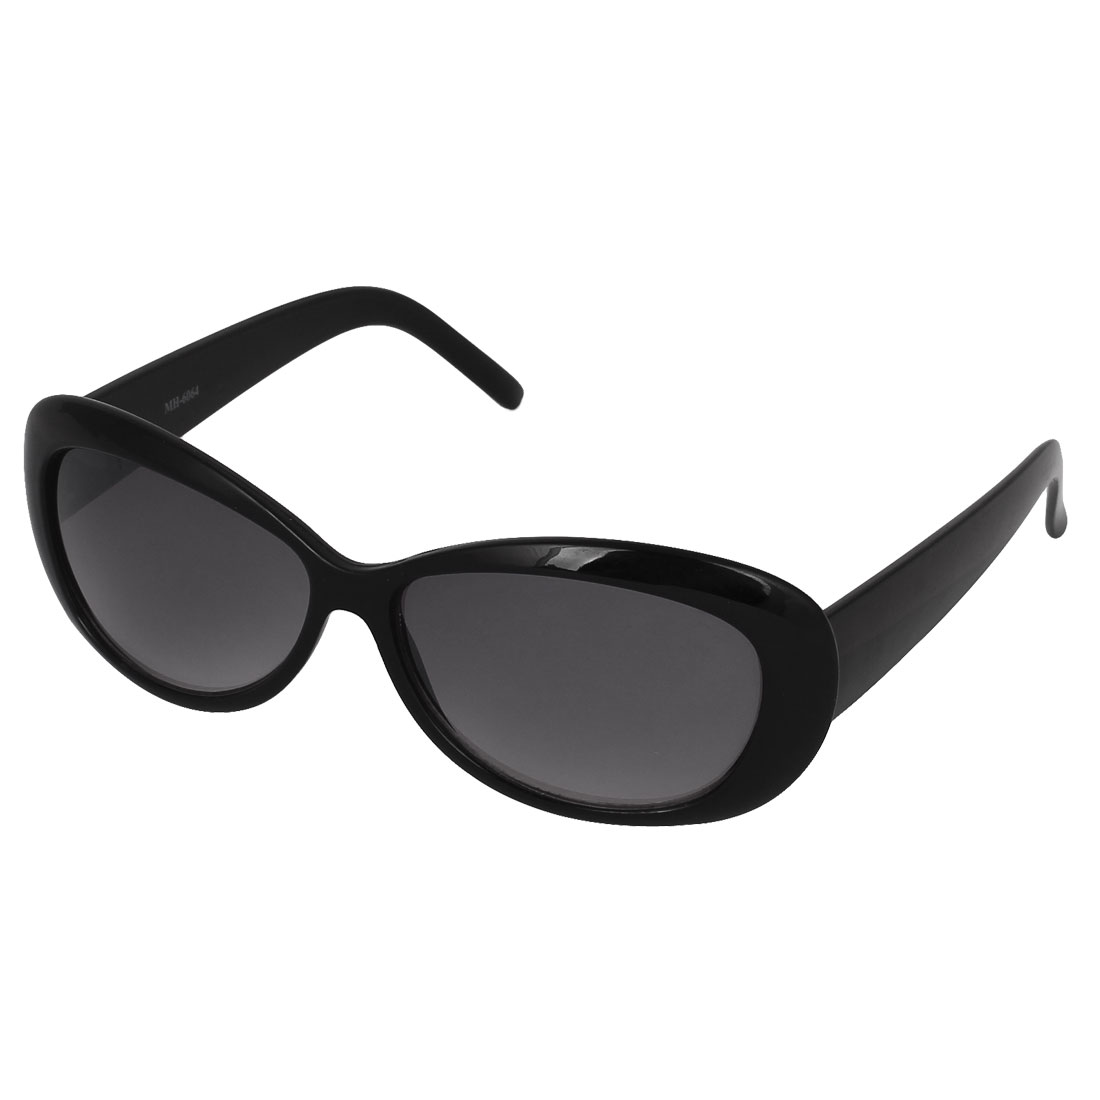 Lady Plastic Full Rim Single Bridge Gray Water Drop Lens Sunglasses Black